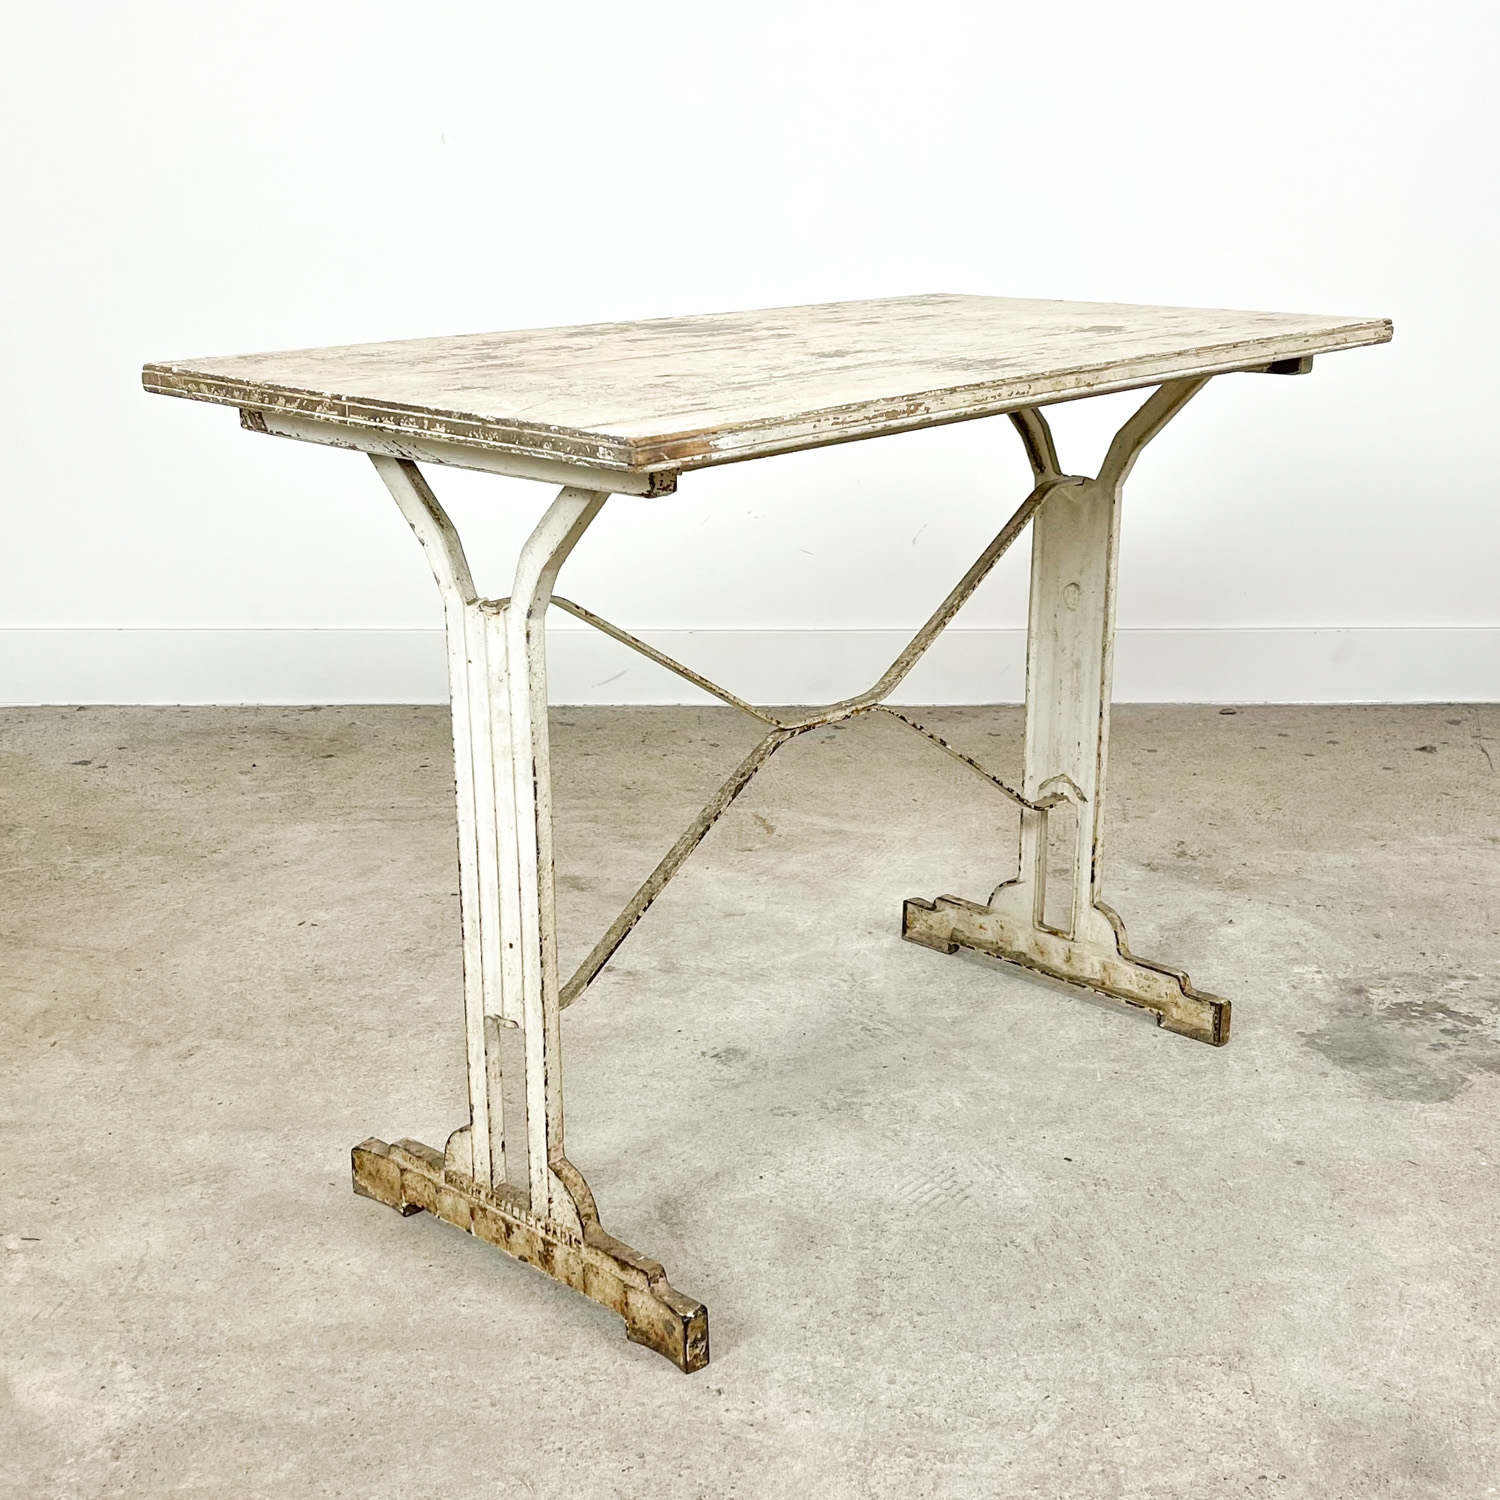 Antique white painted wooden bistro table by Martin Meallet paris